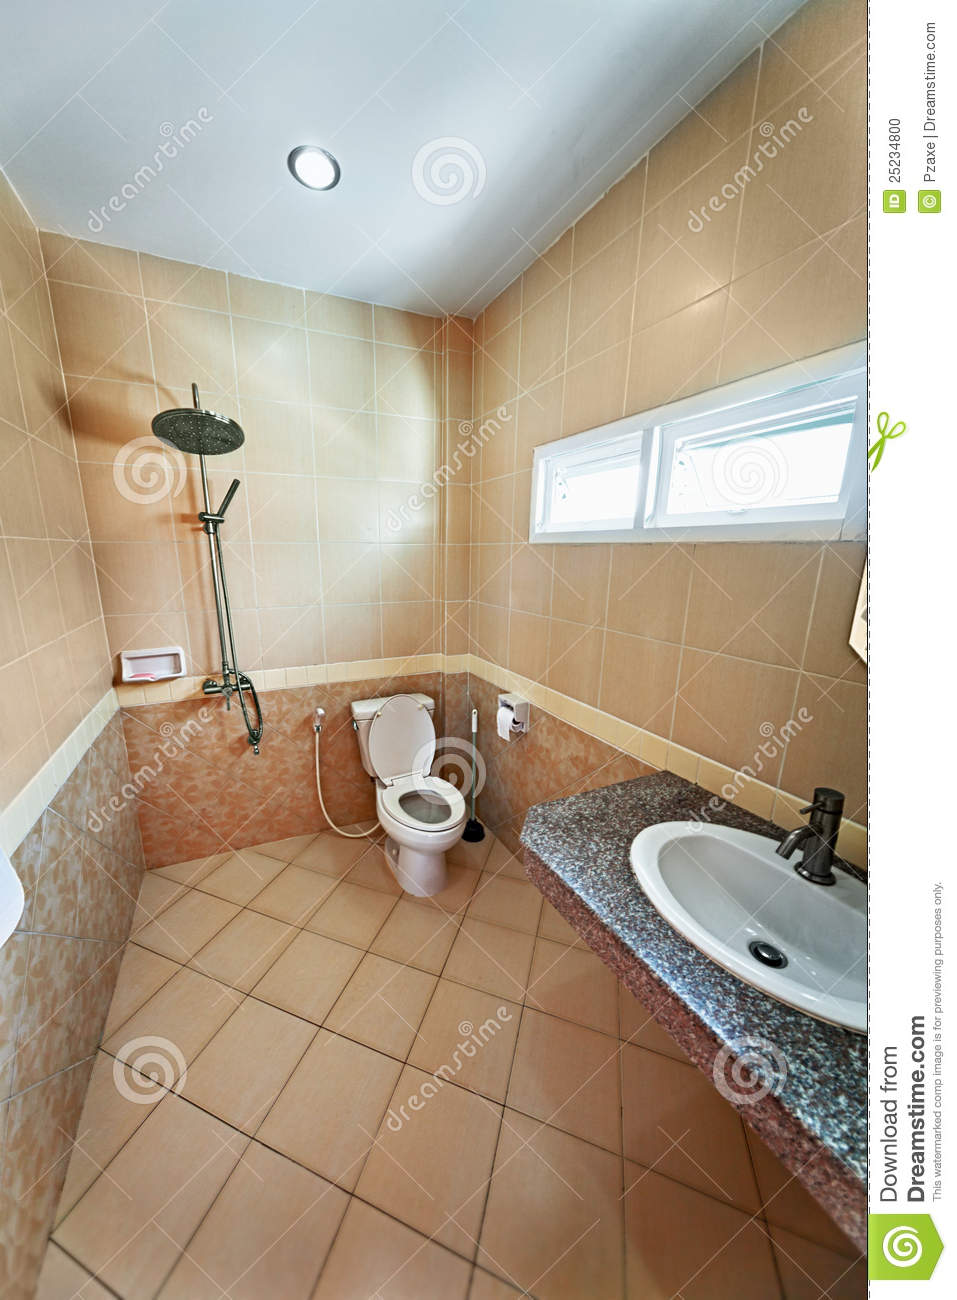 Iinterior of beige bathroom with shower stock photo for Salle de bain moderne houzz